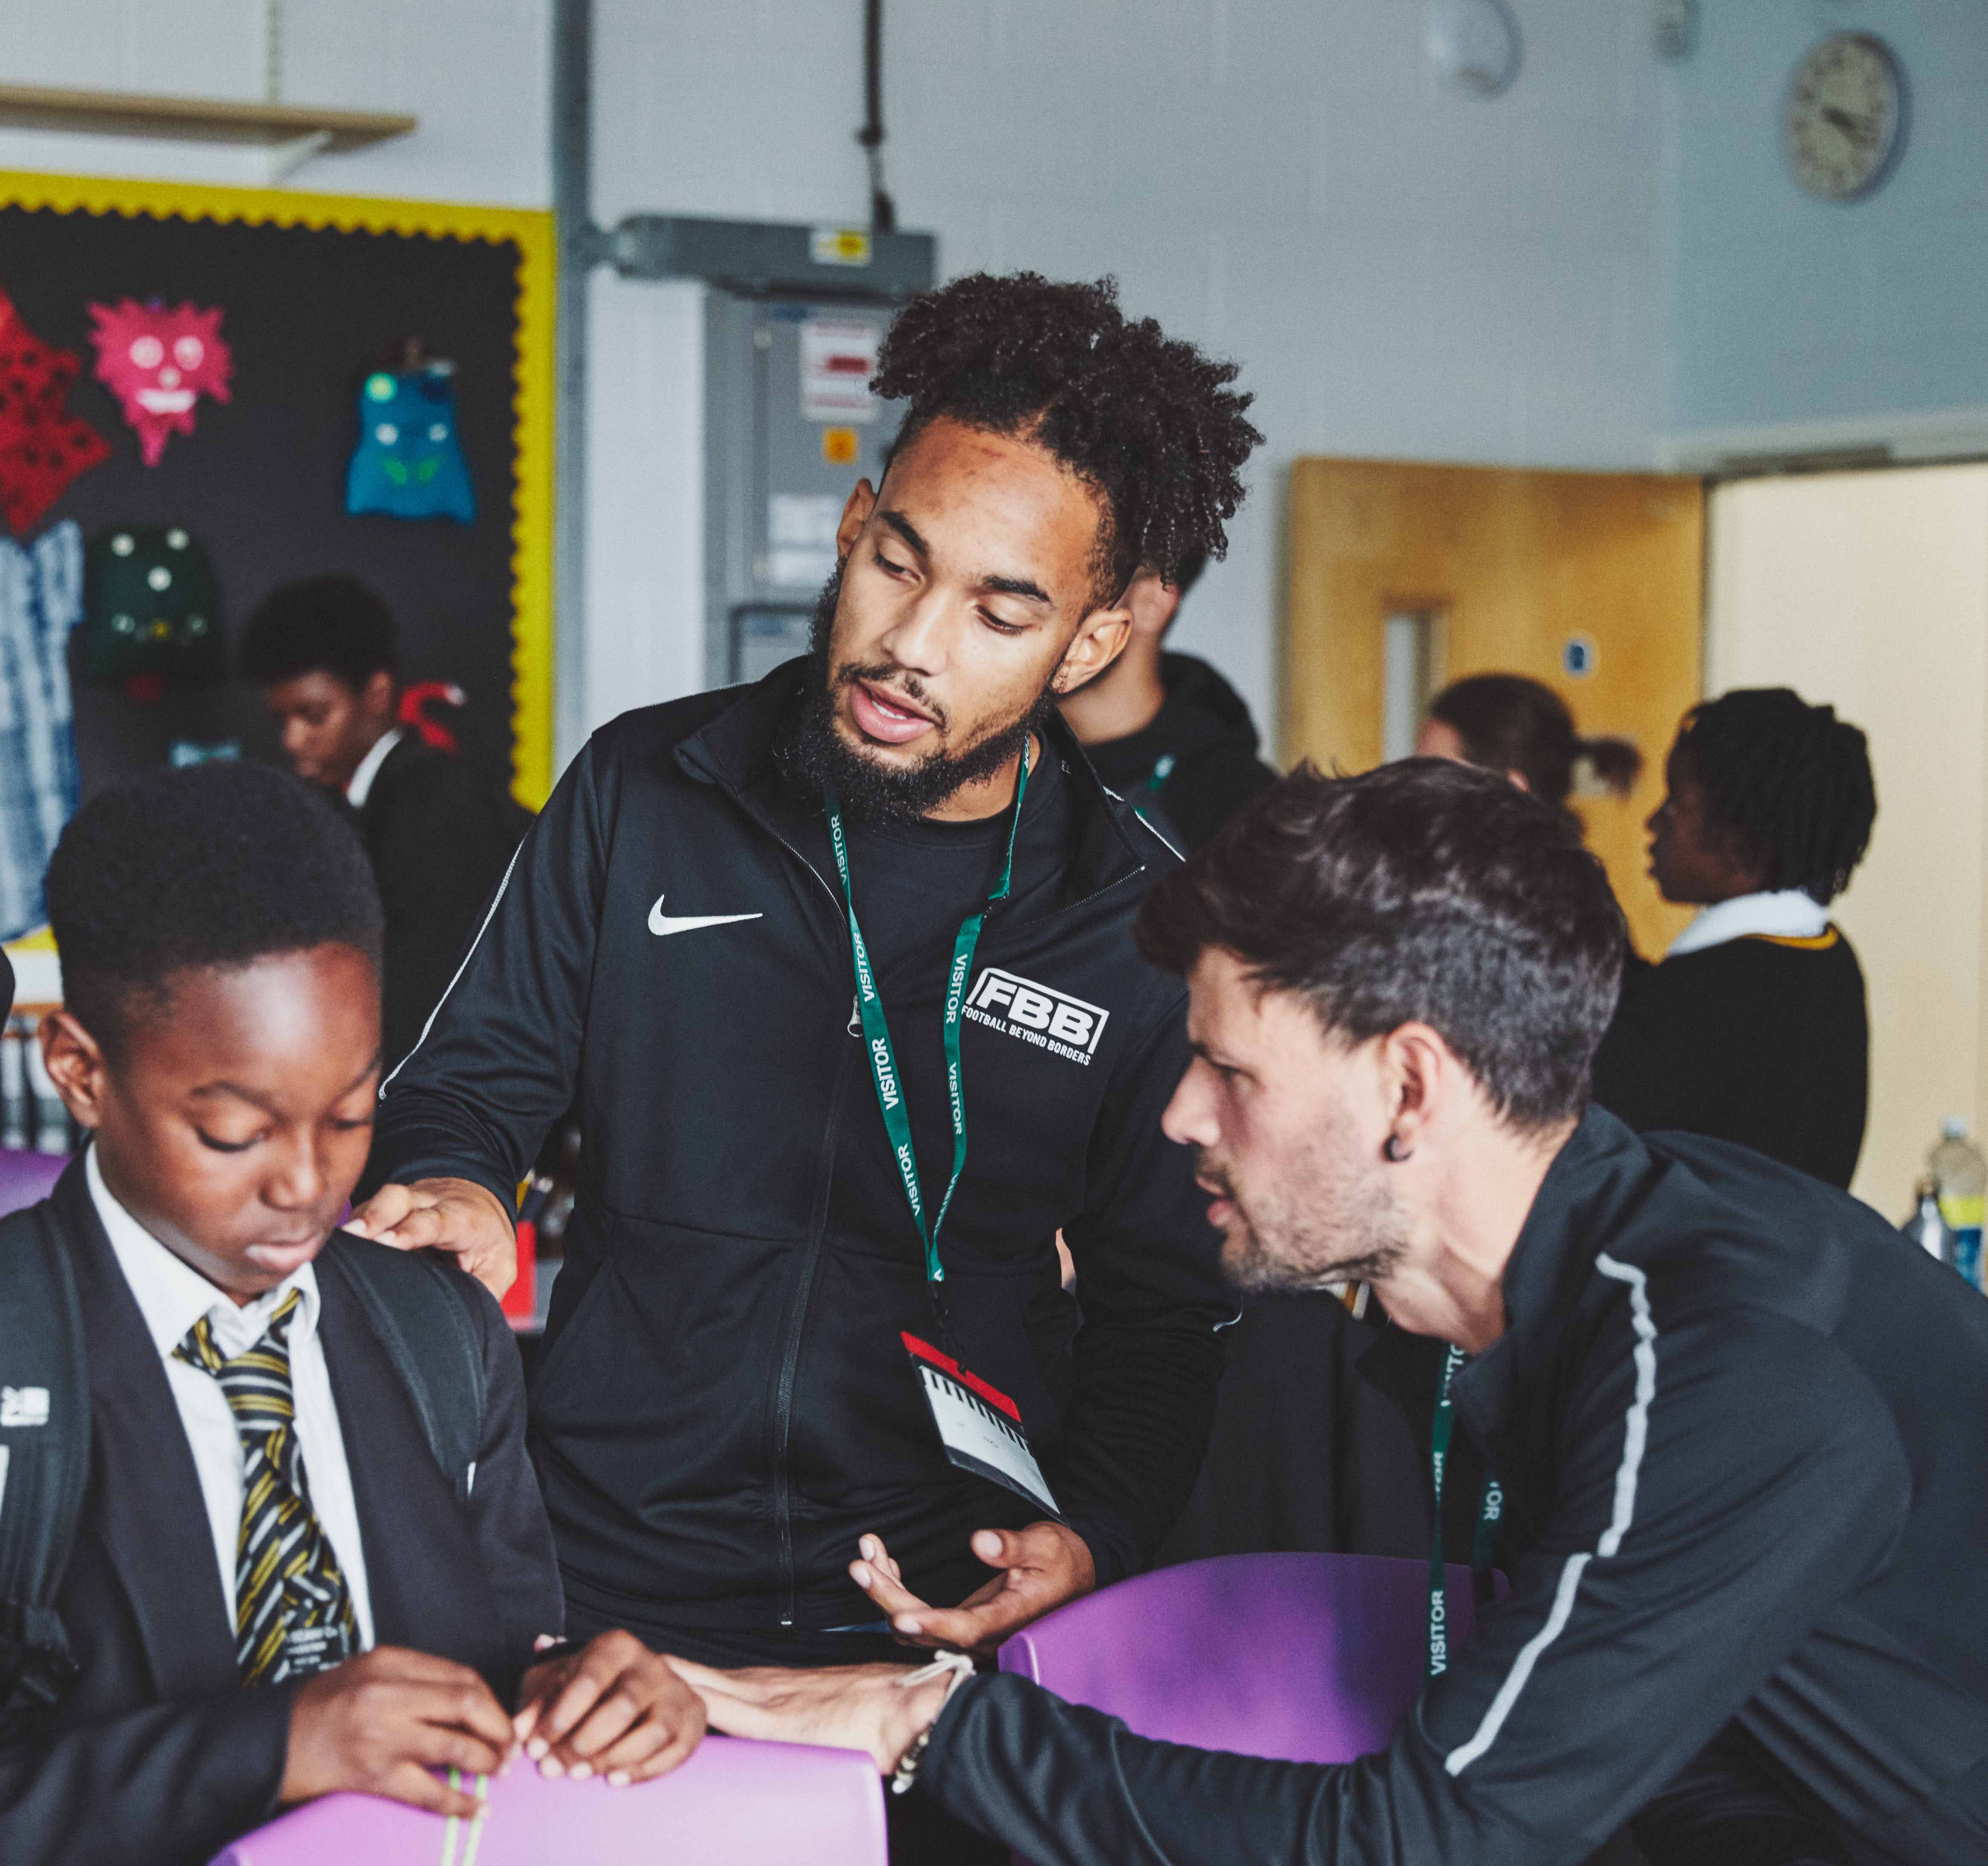 FBB practitioner supporting young person in classroom